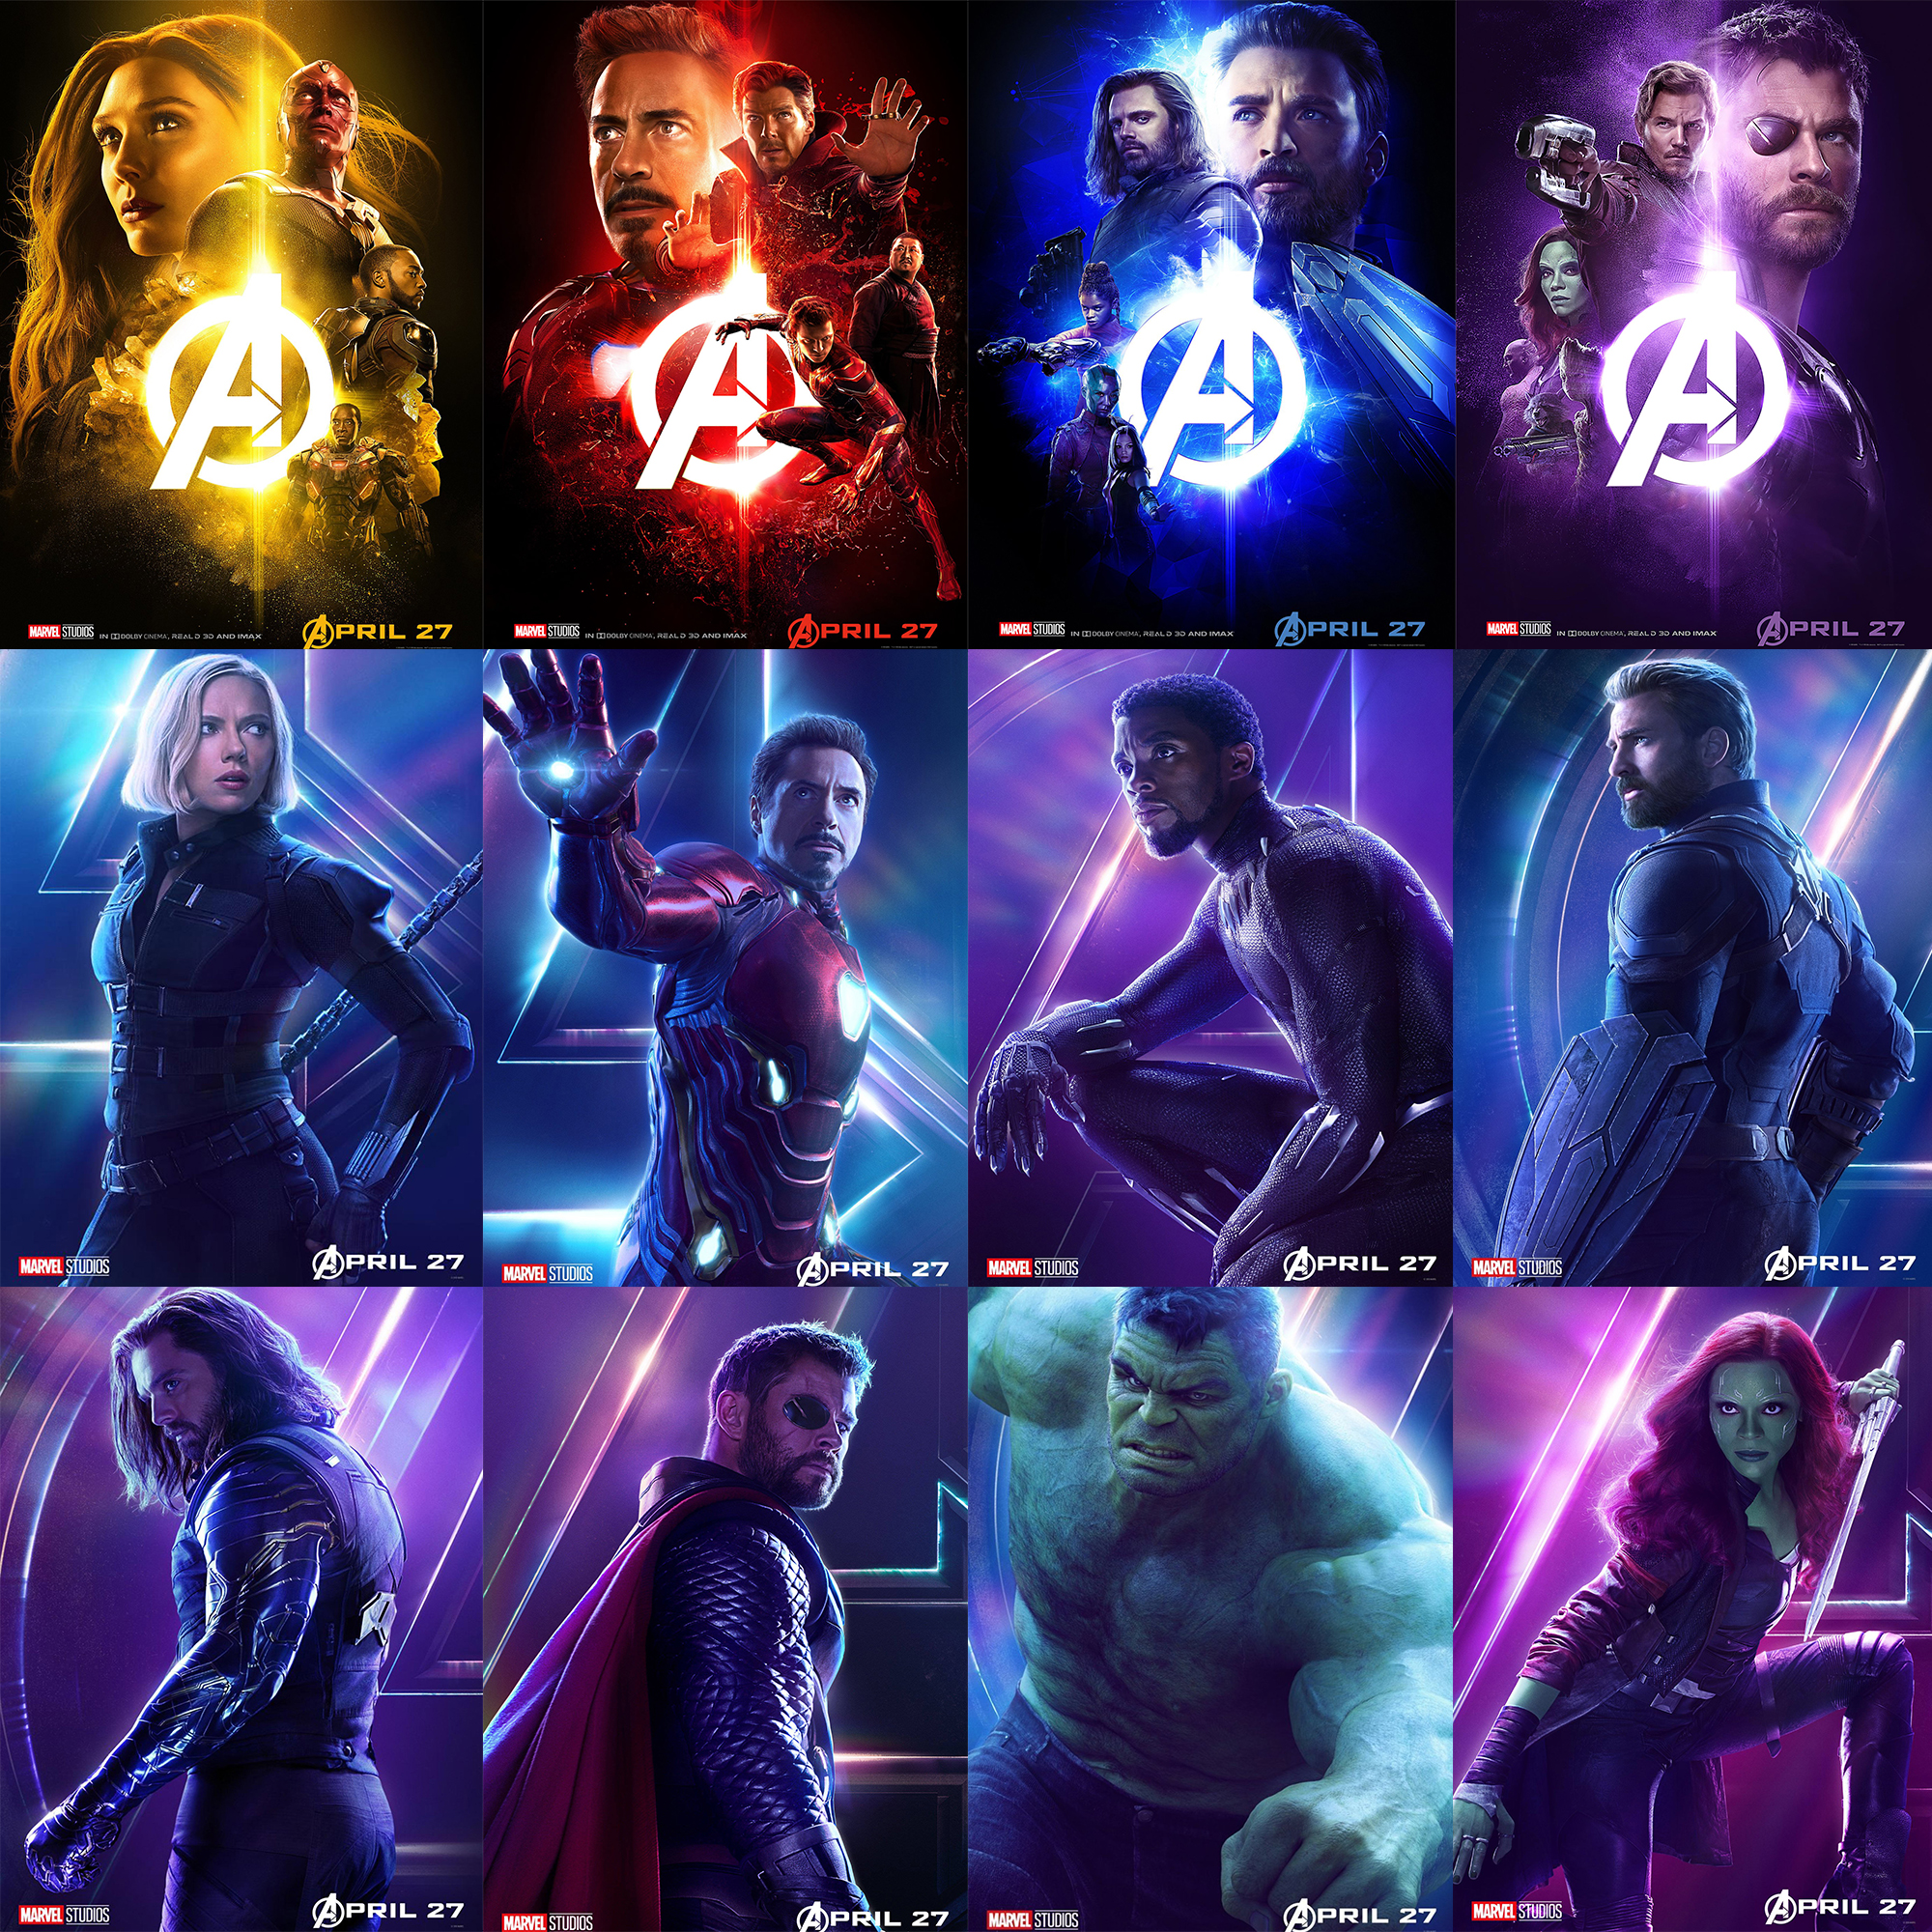 US $1 62 40% OFF|Avengers Infinite World 22 Characters Posters Movie Wall  Stickers Glossy Paper Prints High Definition Bedroom Decoration-in Wall